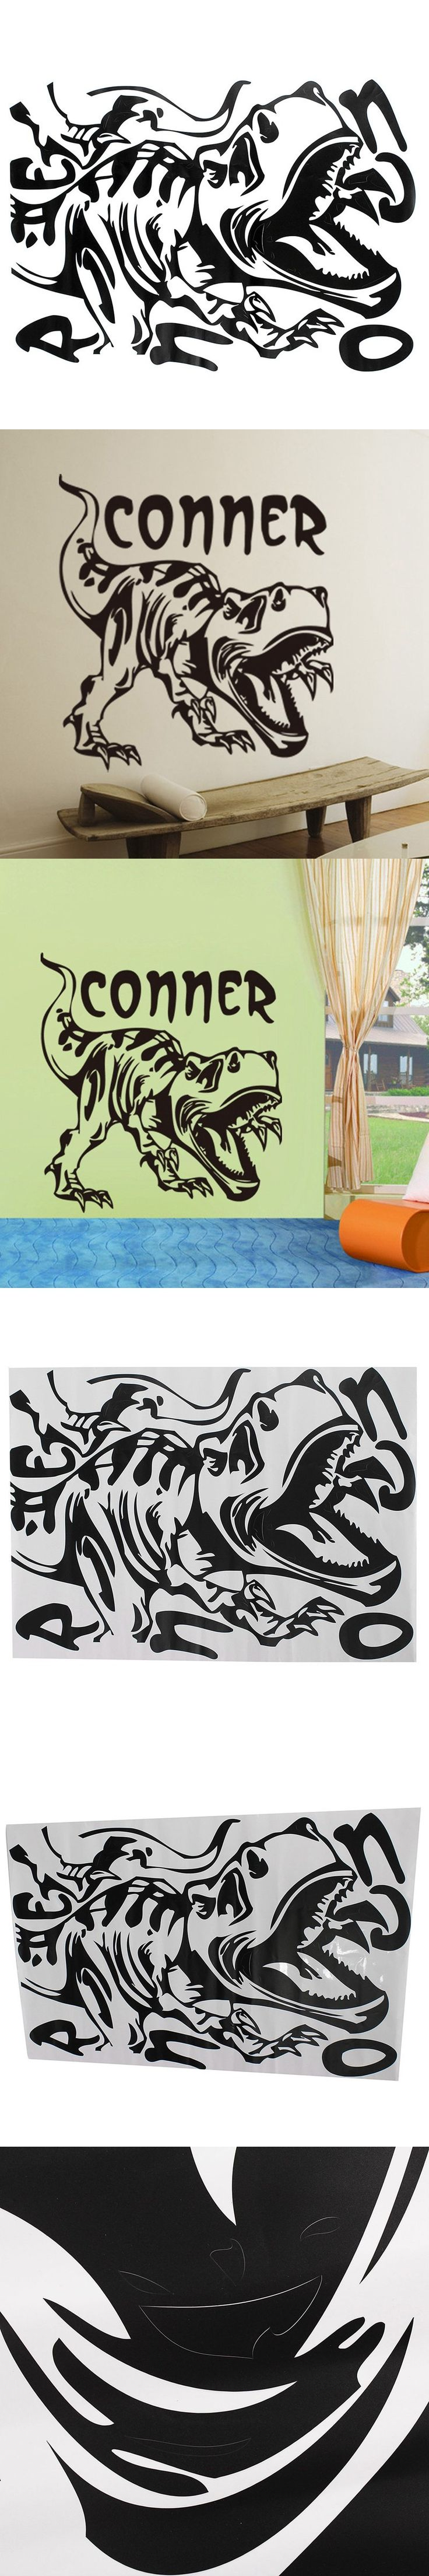 70 best diy dinosaurs images on pinterest dinosaur party hot sale removable vinyl dinosaur wall sticker wallpaper mural diy art kids bedroom nursery home decor